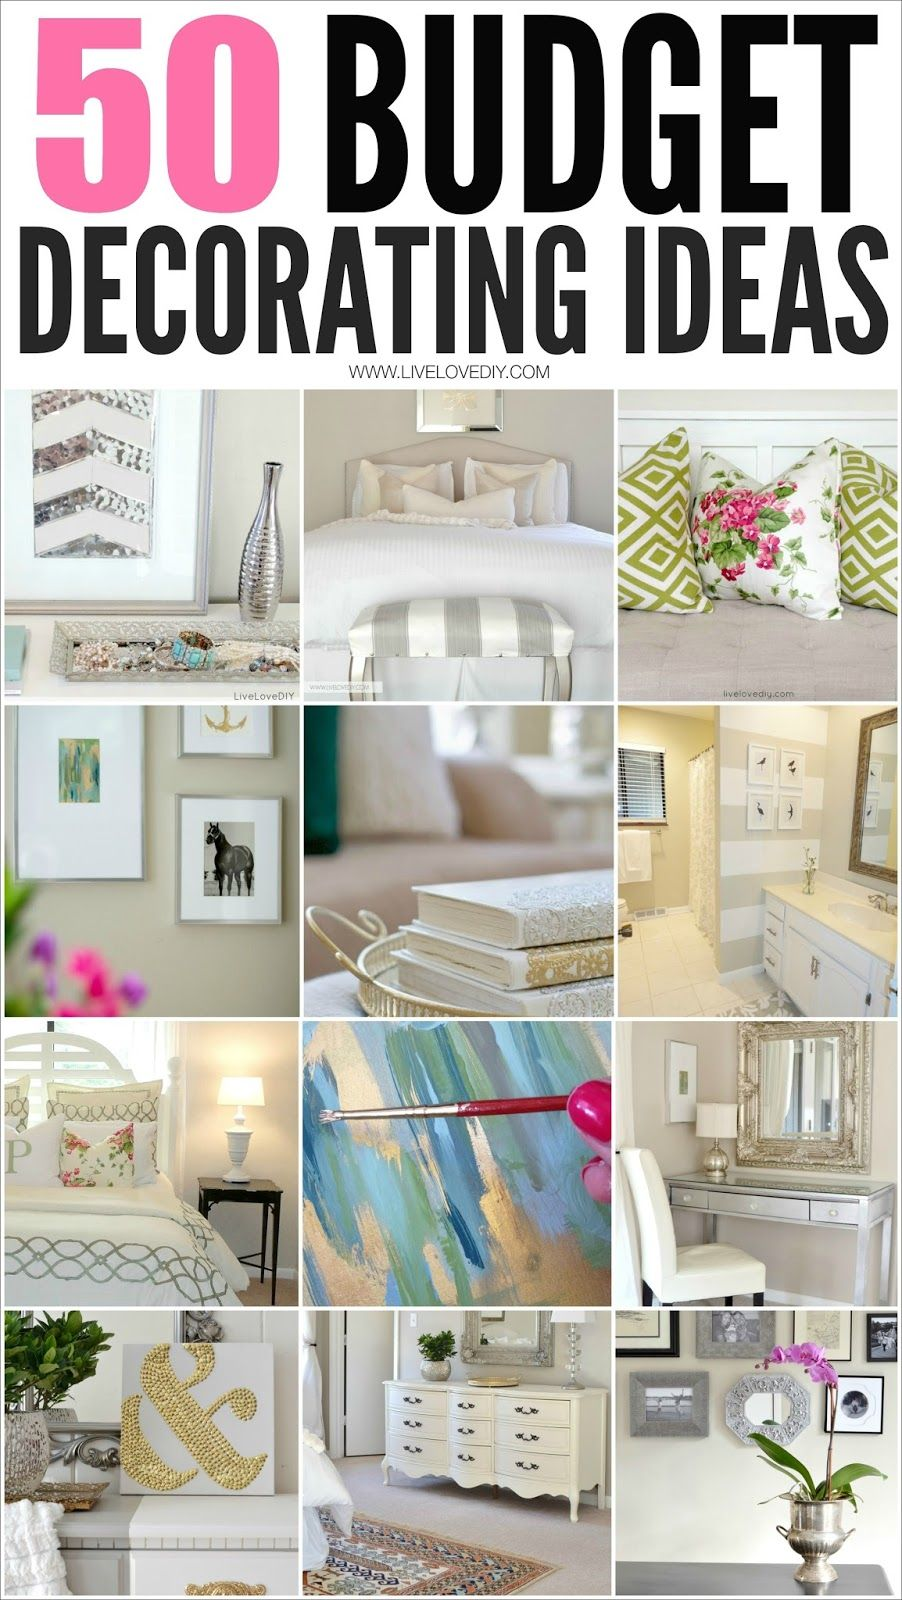 Budget Decorating Tips You Should Know Livelovediy Home